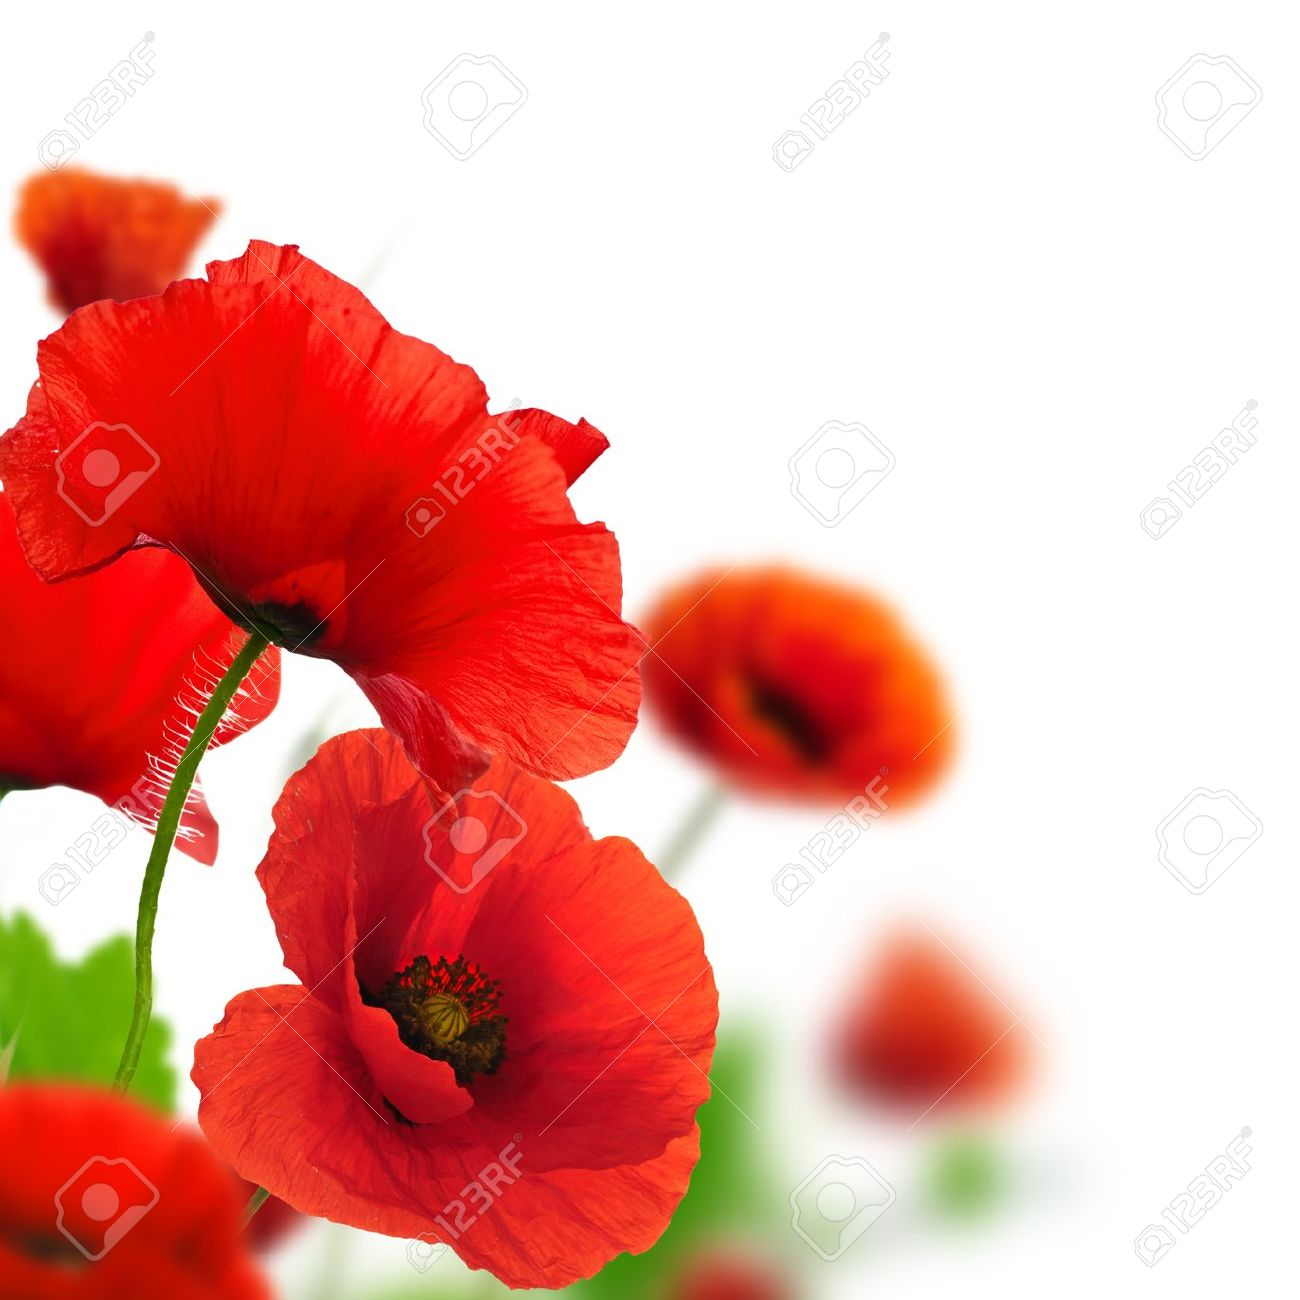 Red poppies over a white background border floral design for red poppies over a white background border floral design for an angle of page mightylinksfo Choice Image